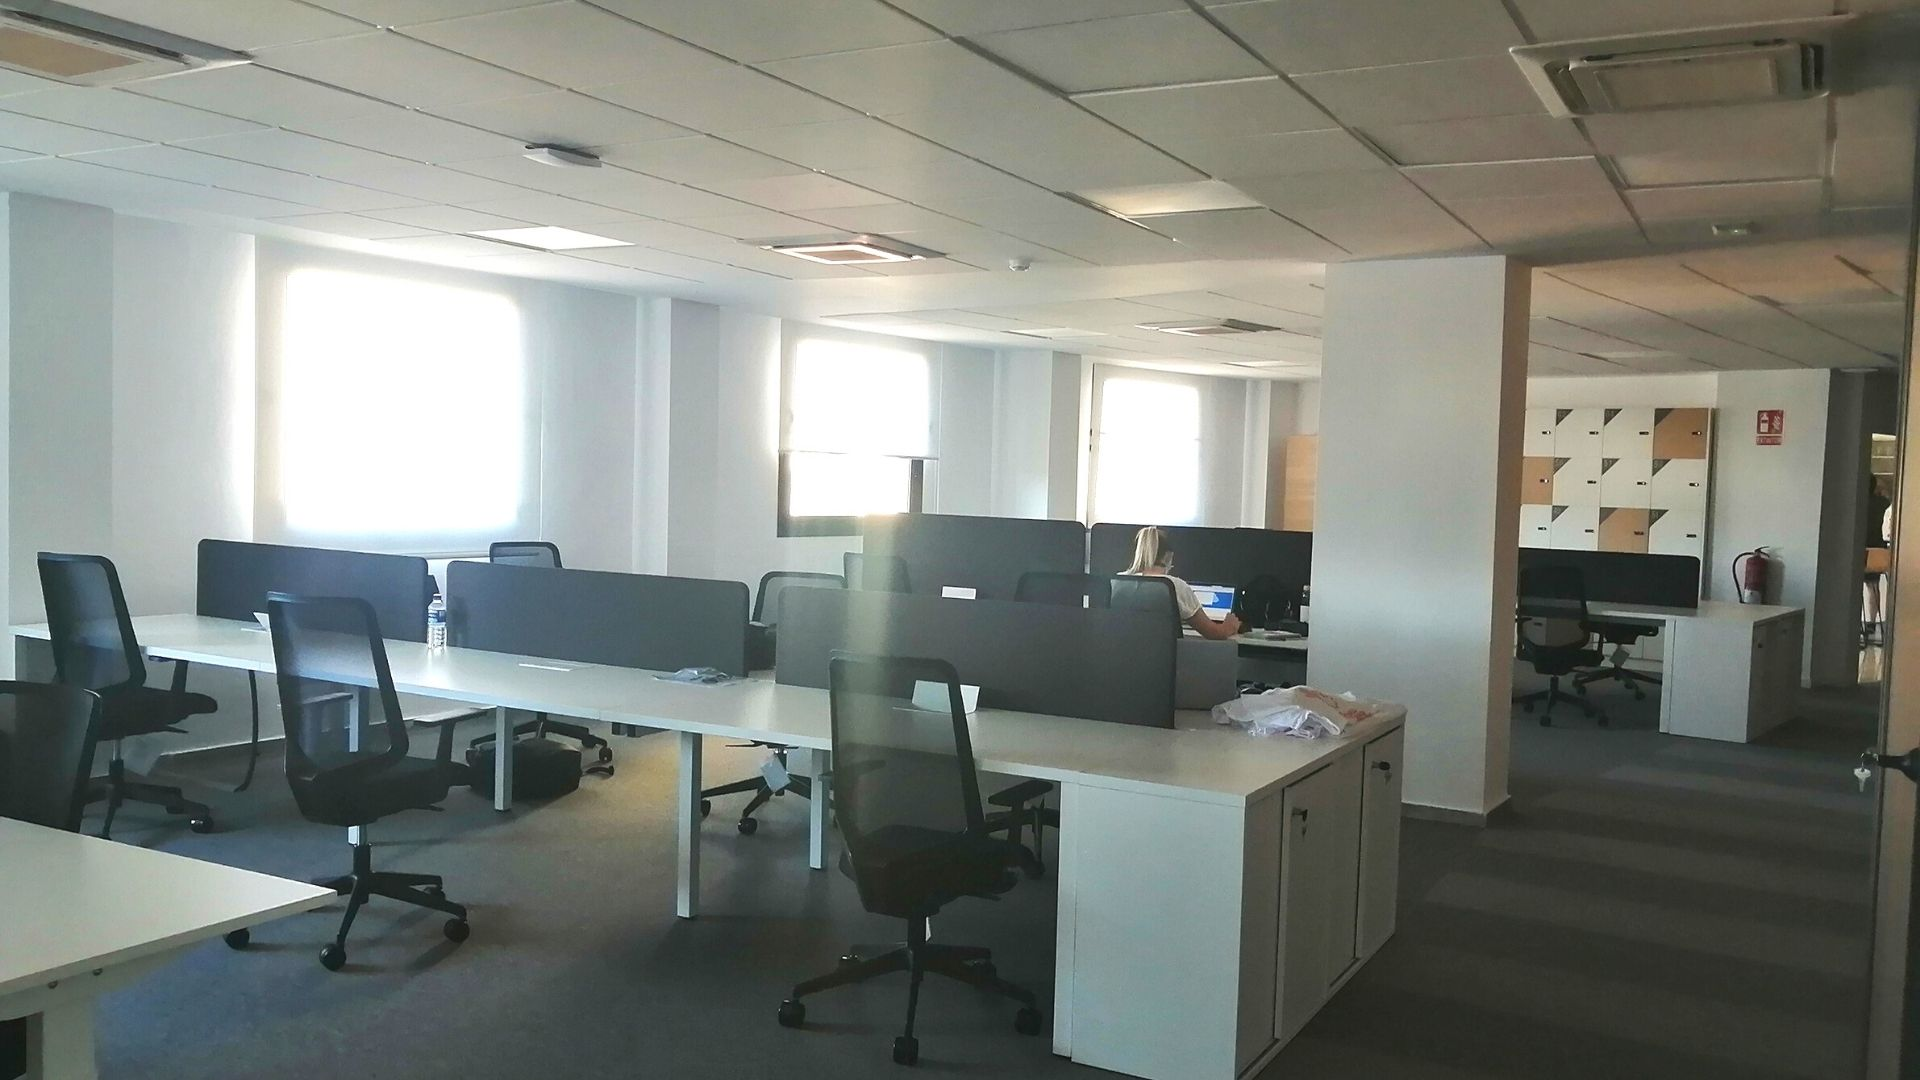 Our new Adessa office in Malaga is open! - work desks